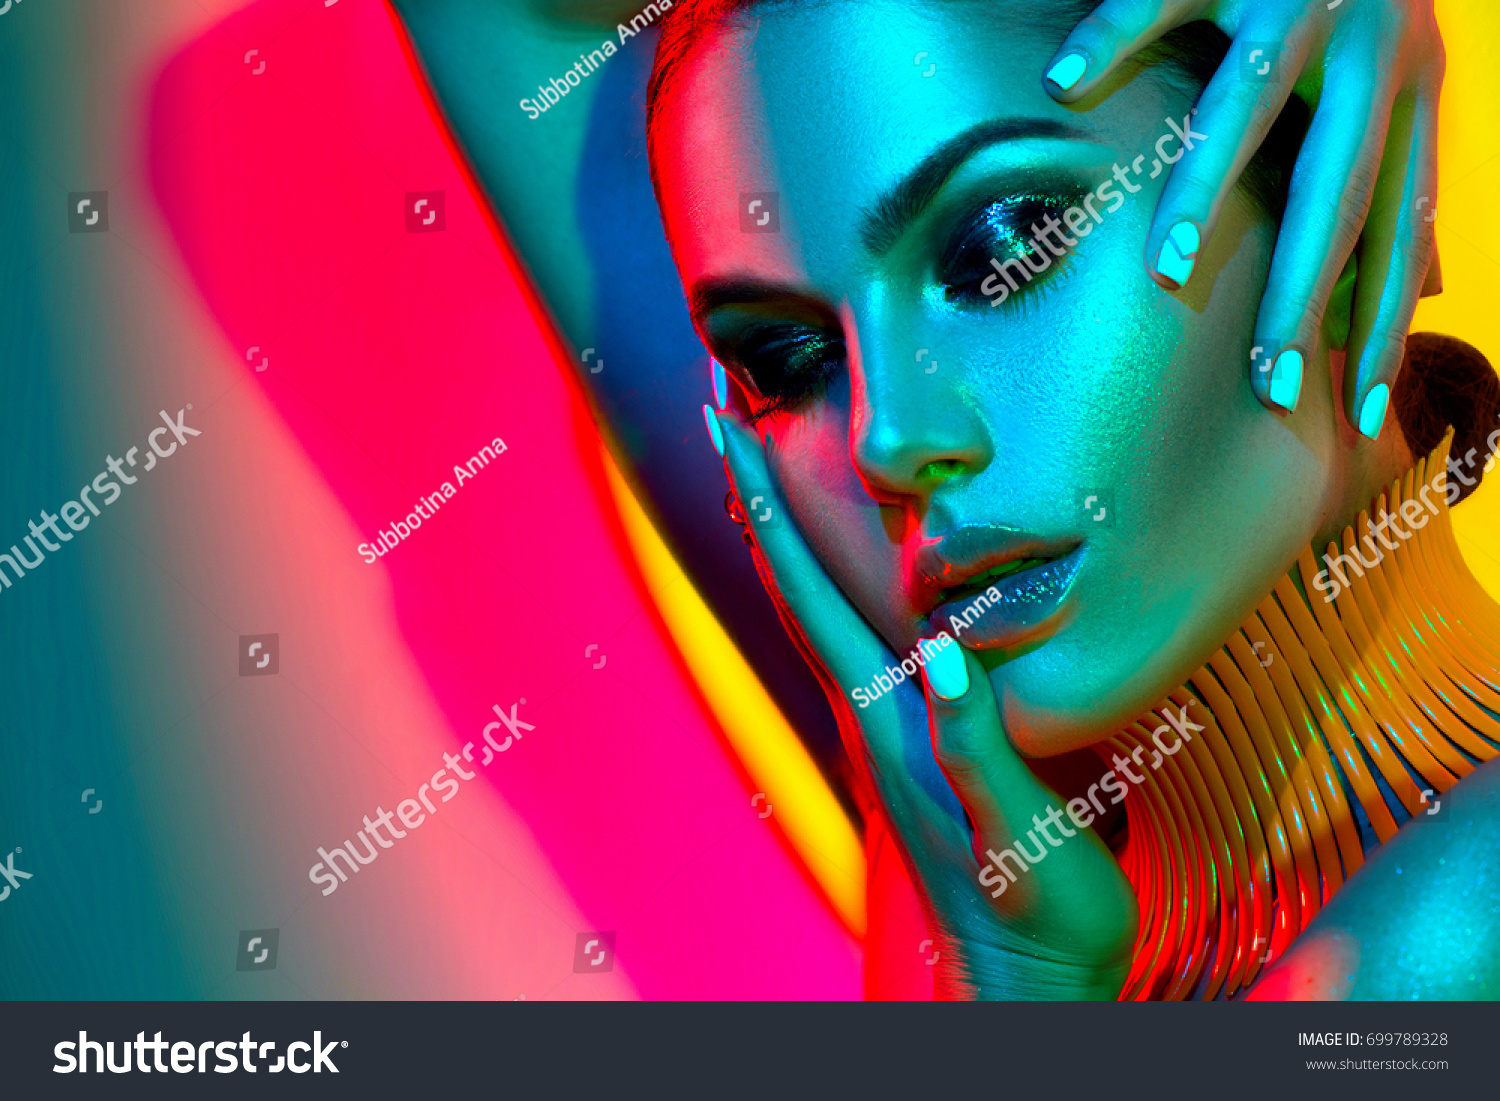 High Fashion model woman in colorful bright lights posing in studio, portrait of beautiful sexy girl with trendy make-up and manicure. Art design, colorful make up. Over colourful vivid background. #699789328 - 123PhotoFree.com